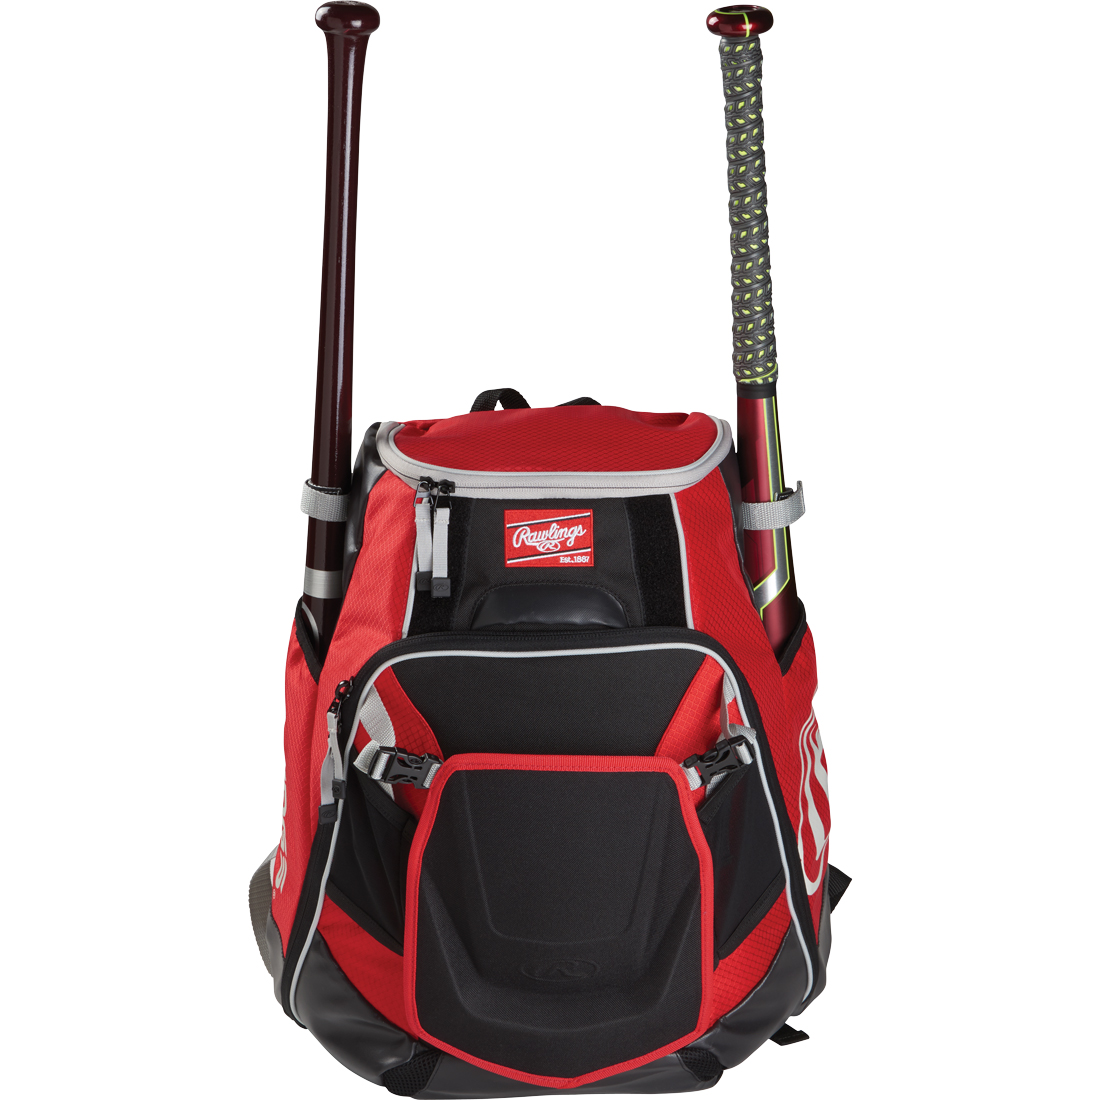 Rawlings Velo Fastpitch Softball Backpack